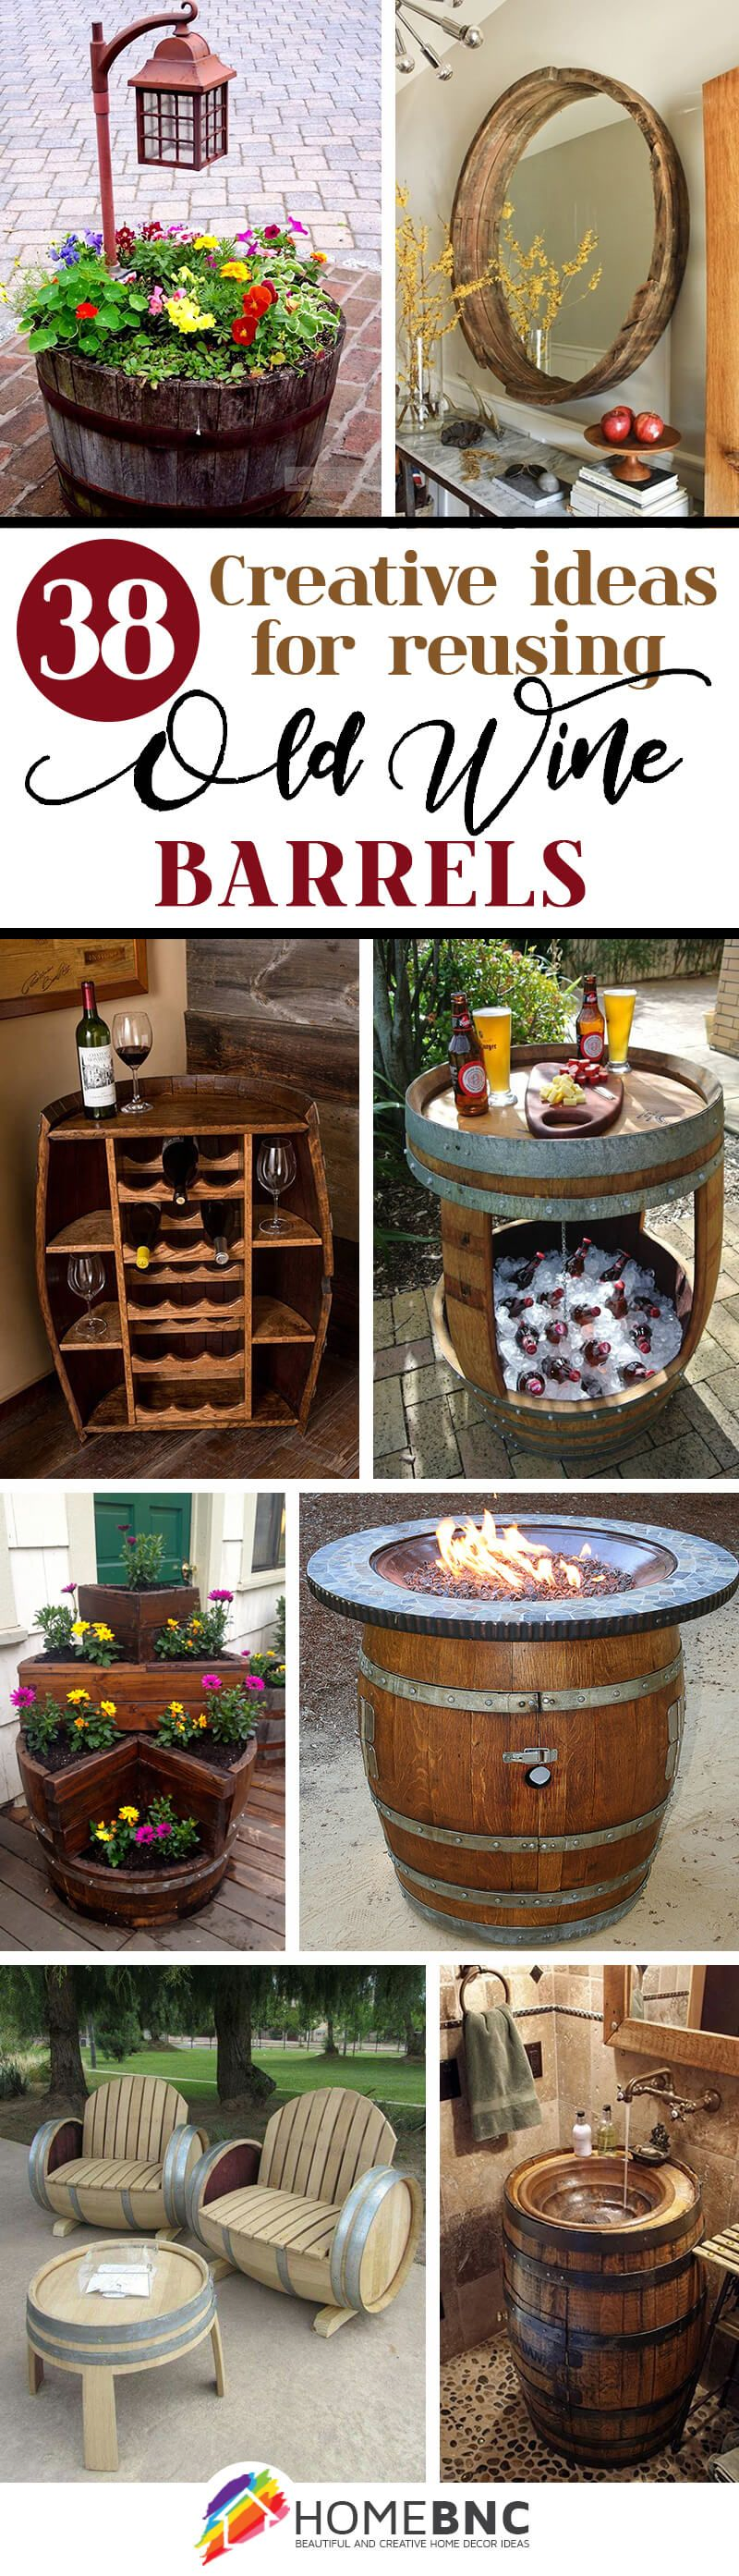 38 Creative Ideas For Reusing Old Wine Barrels